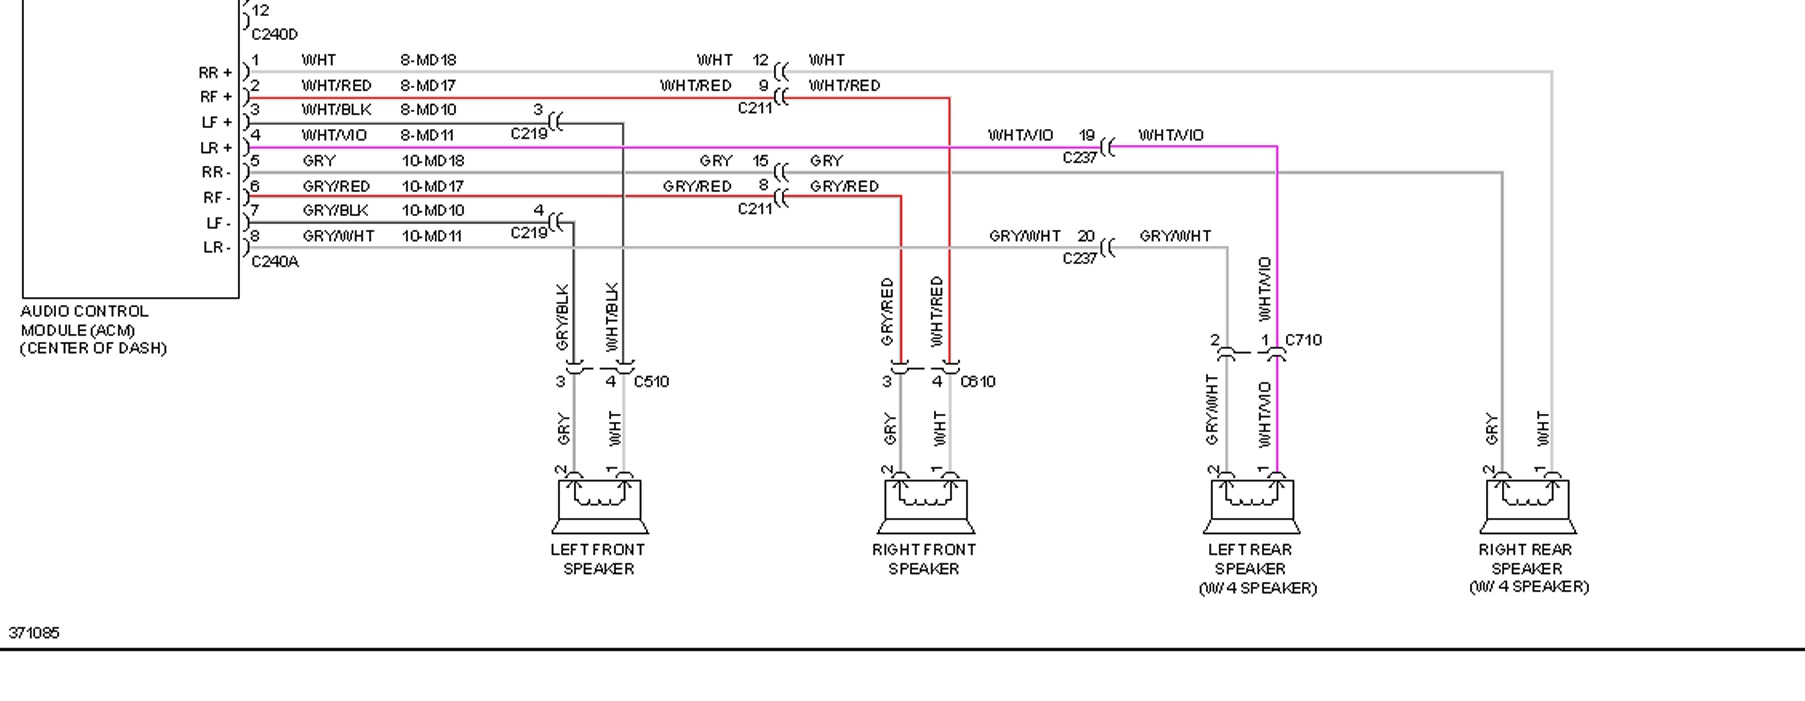 original 2012 ford transit stereo wiring hi i have a 2012 ford transit van 2013 ford wiring diagram at bakdesigns.co